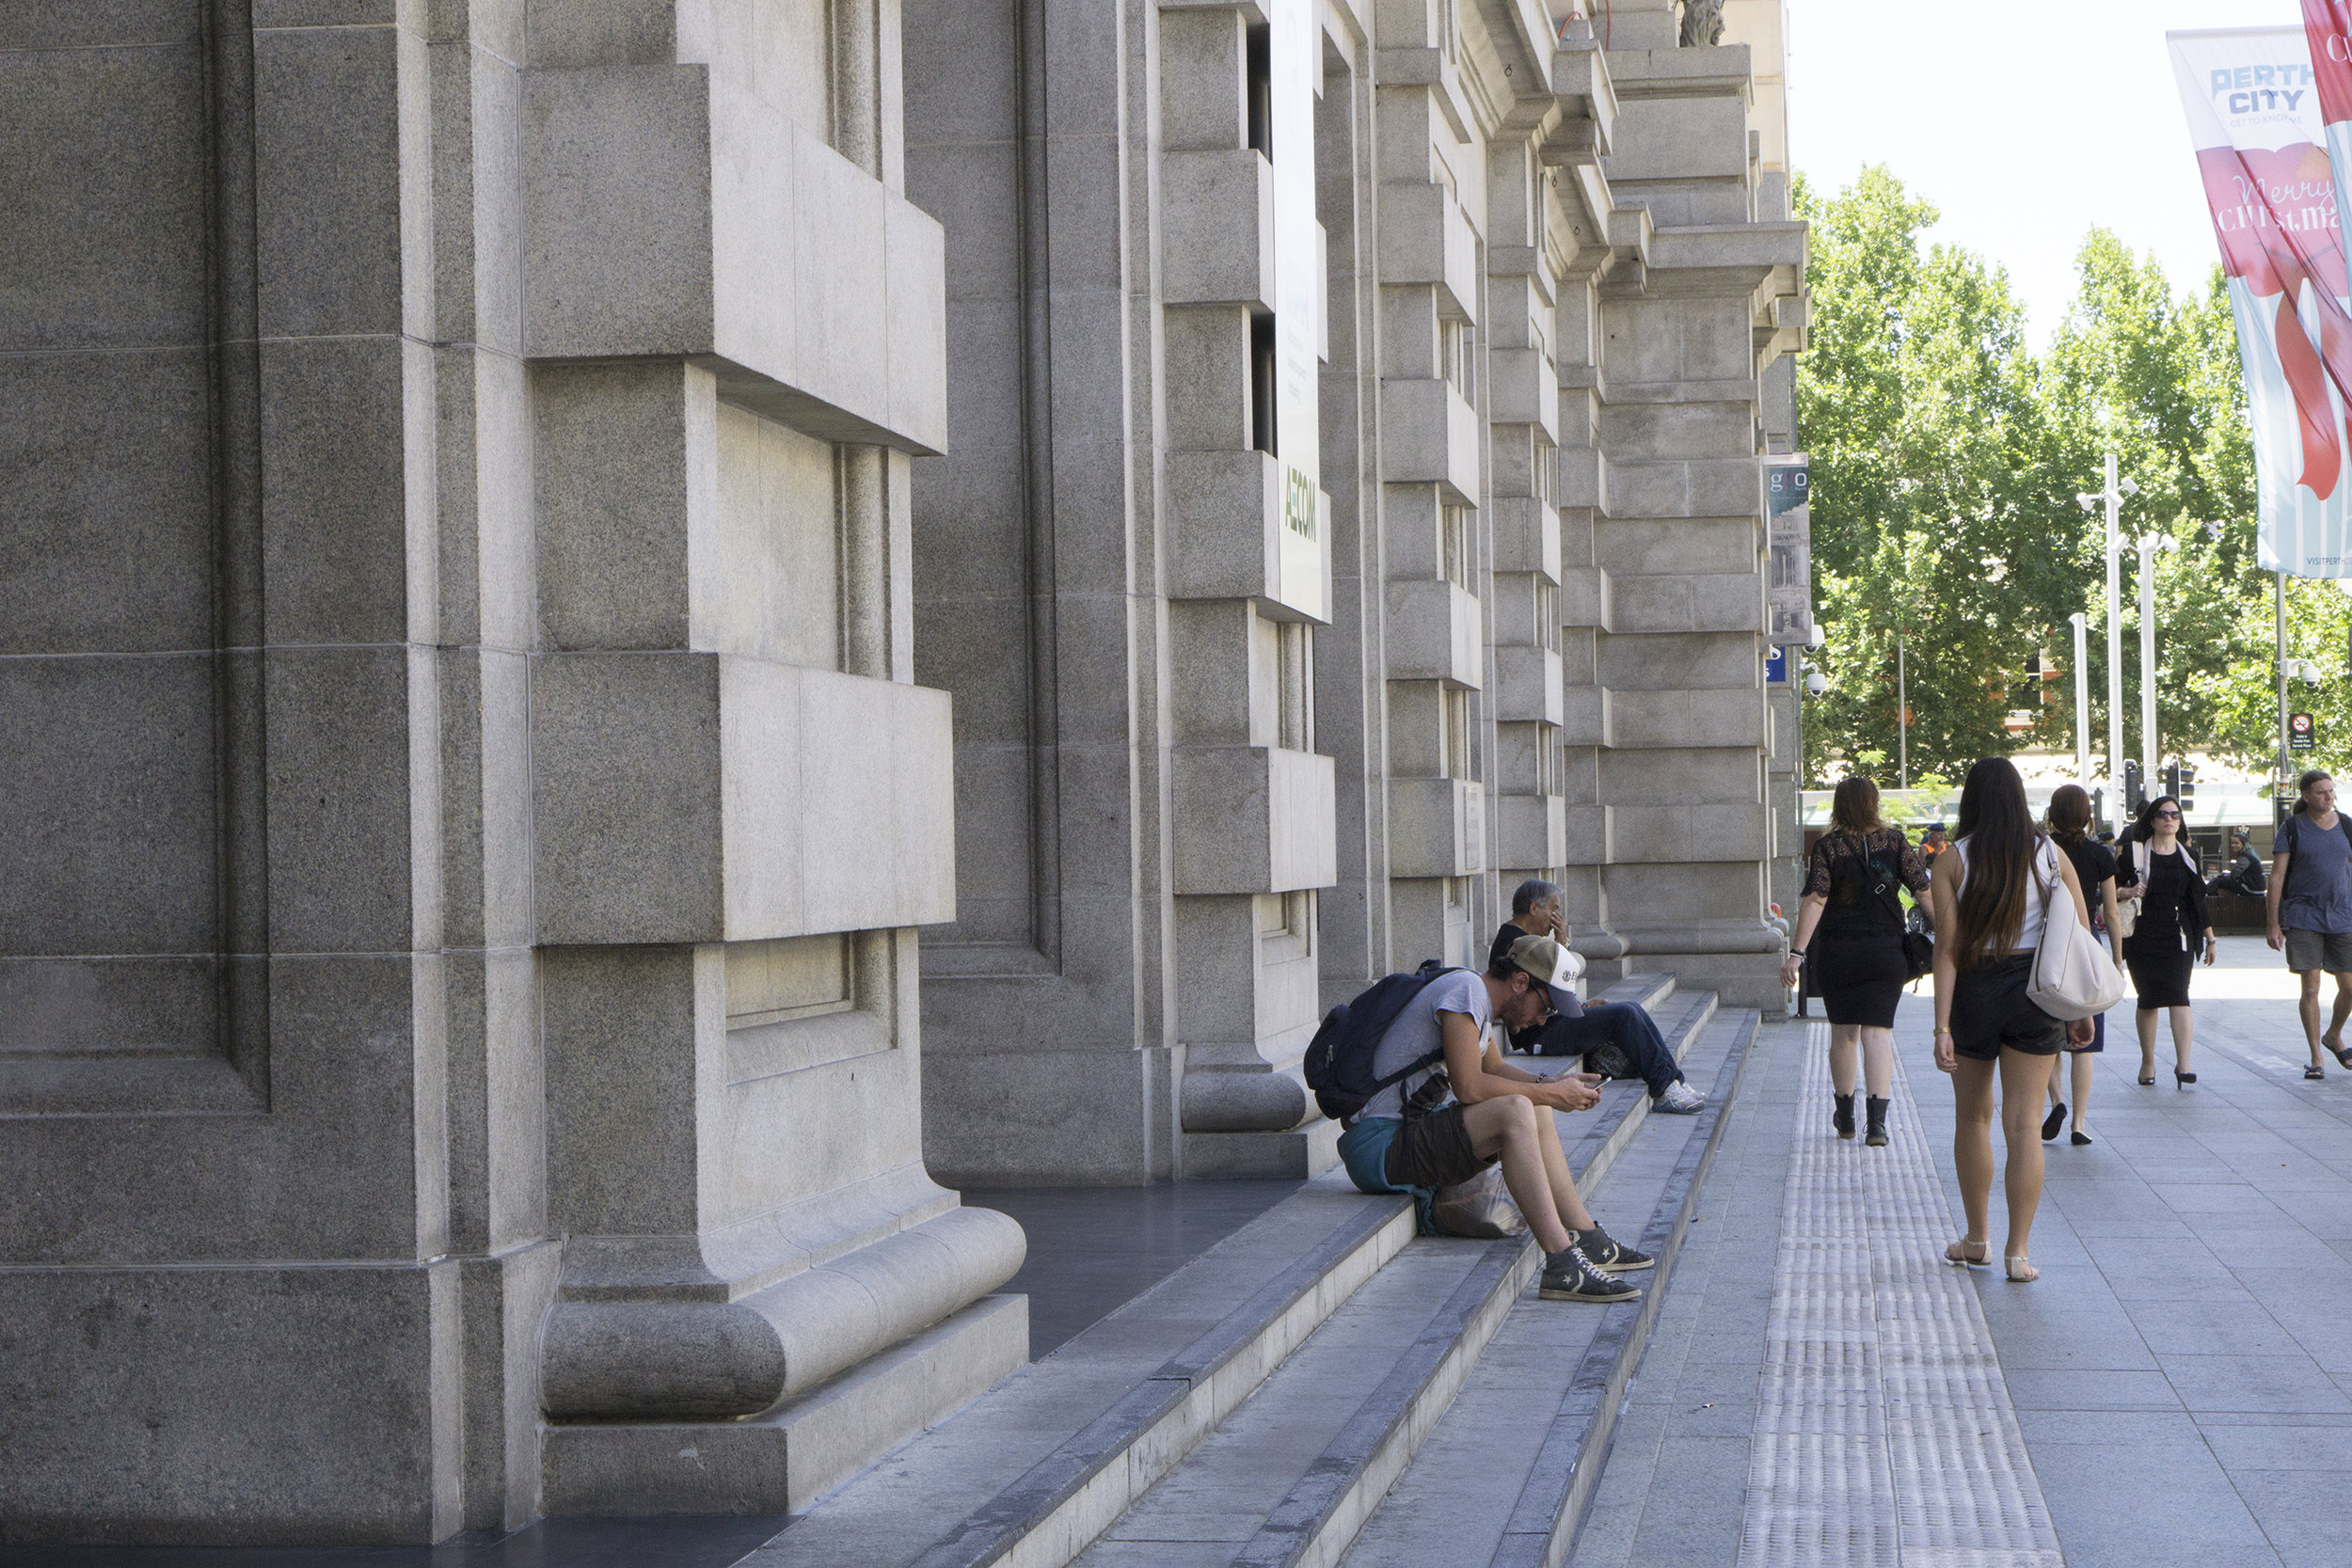 Figs 13, 14: Just siting and relaxing in Forrest Place